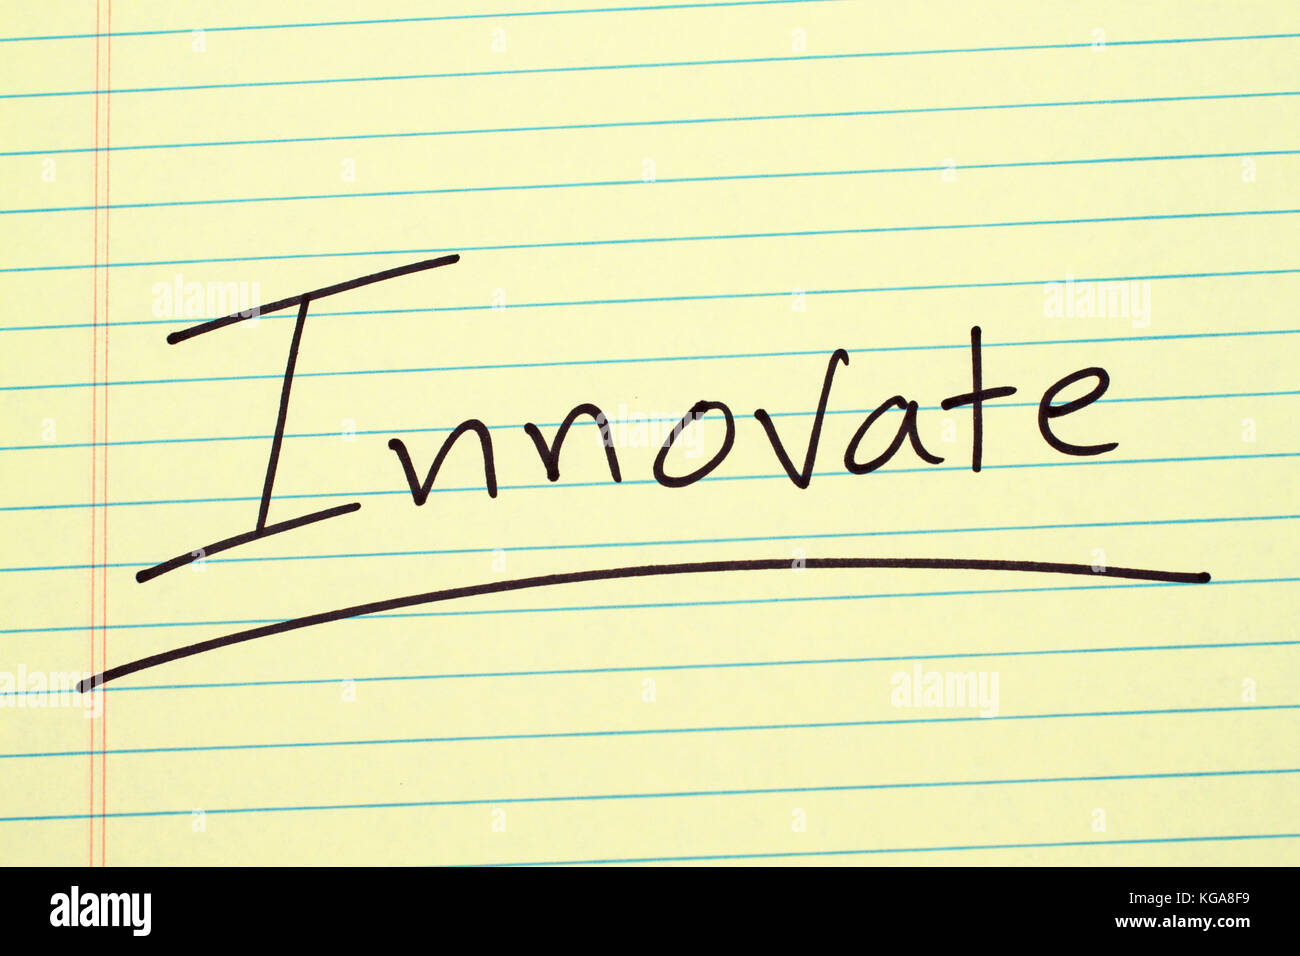 The word 'Innovate' underlined on a yellow legal pad - Stock Image